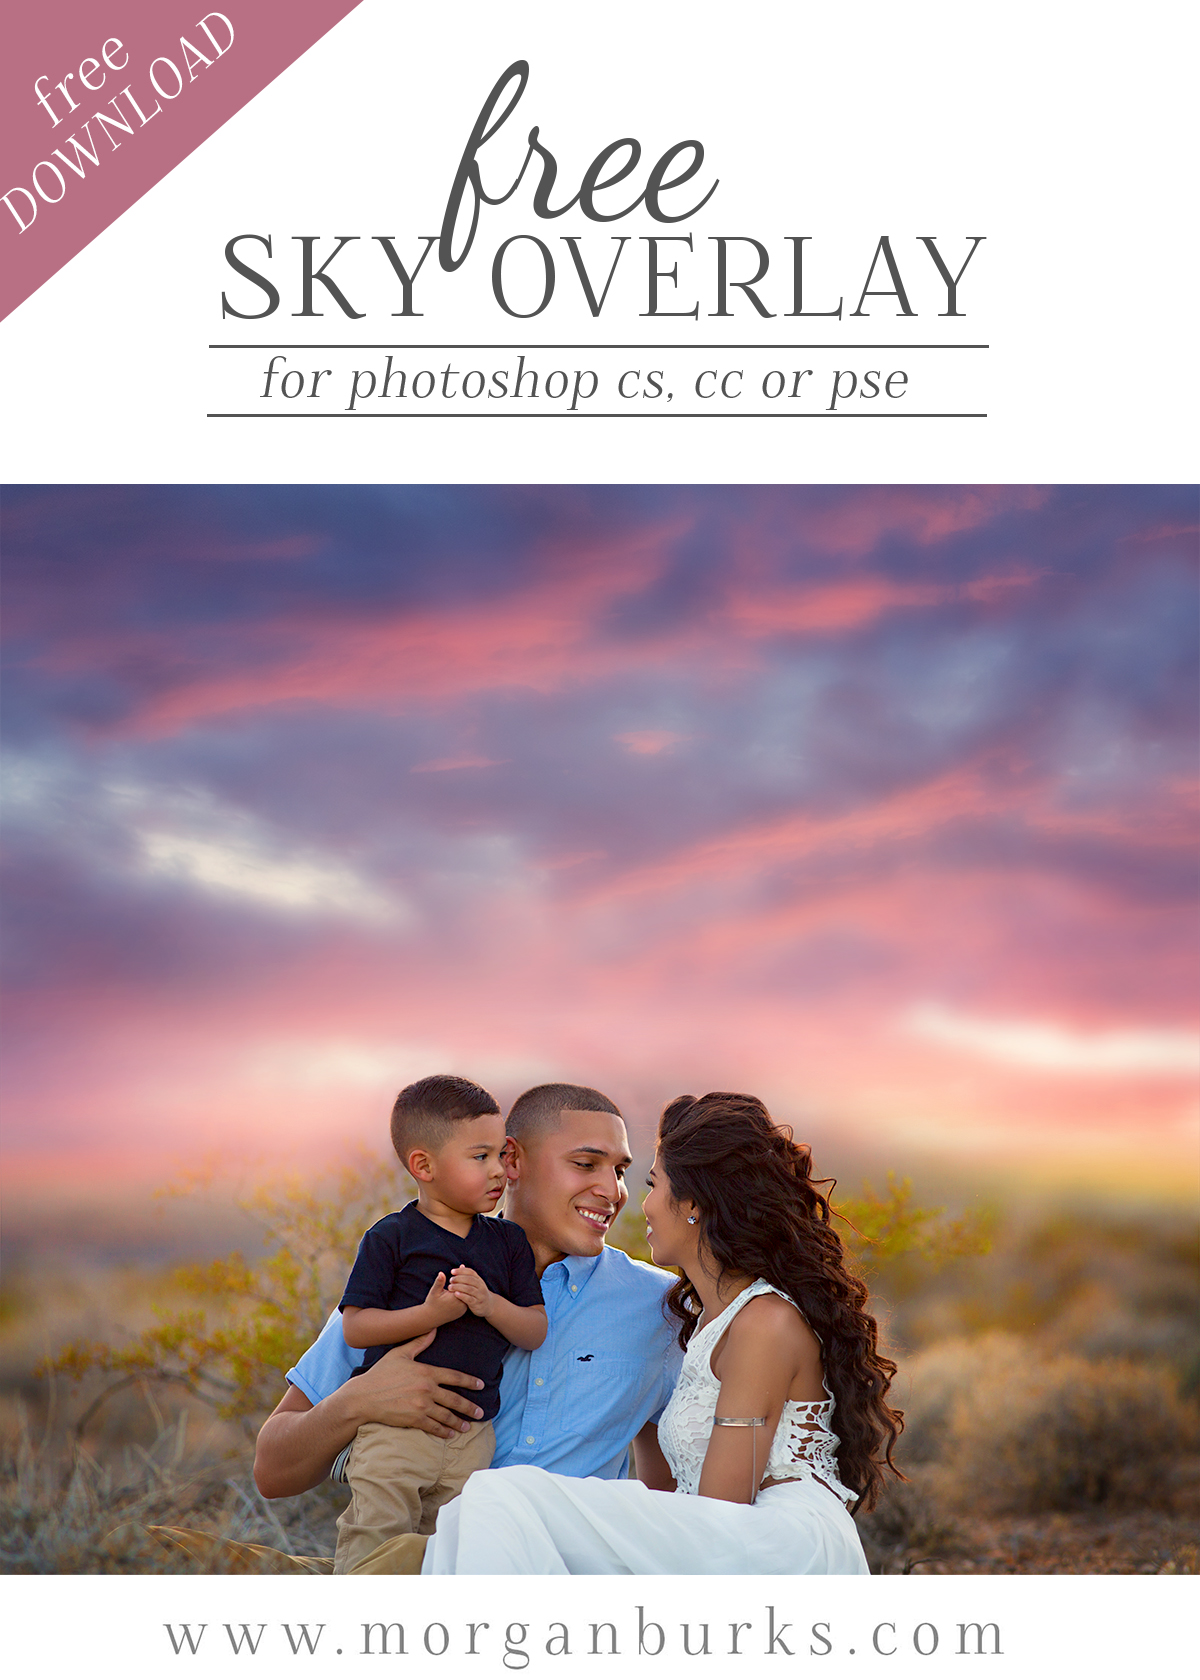 Download this stunning free sunset sky overlay and transform plain skies into something beautiful.